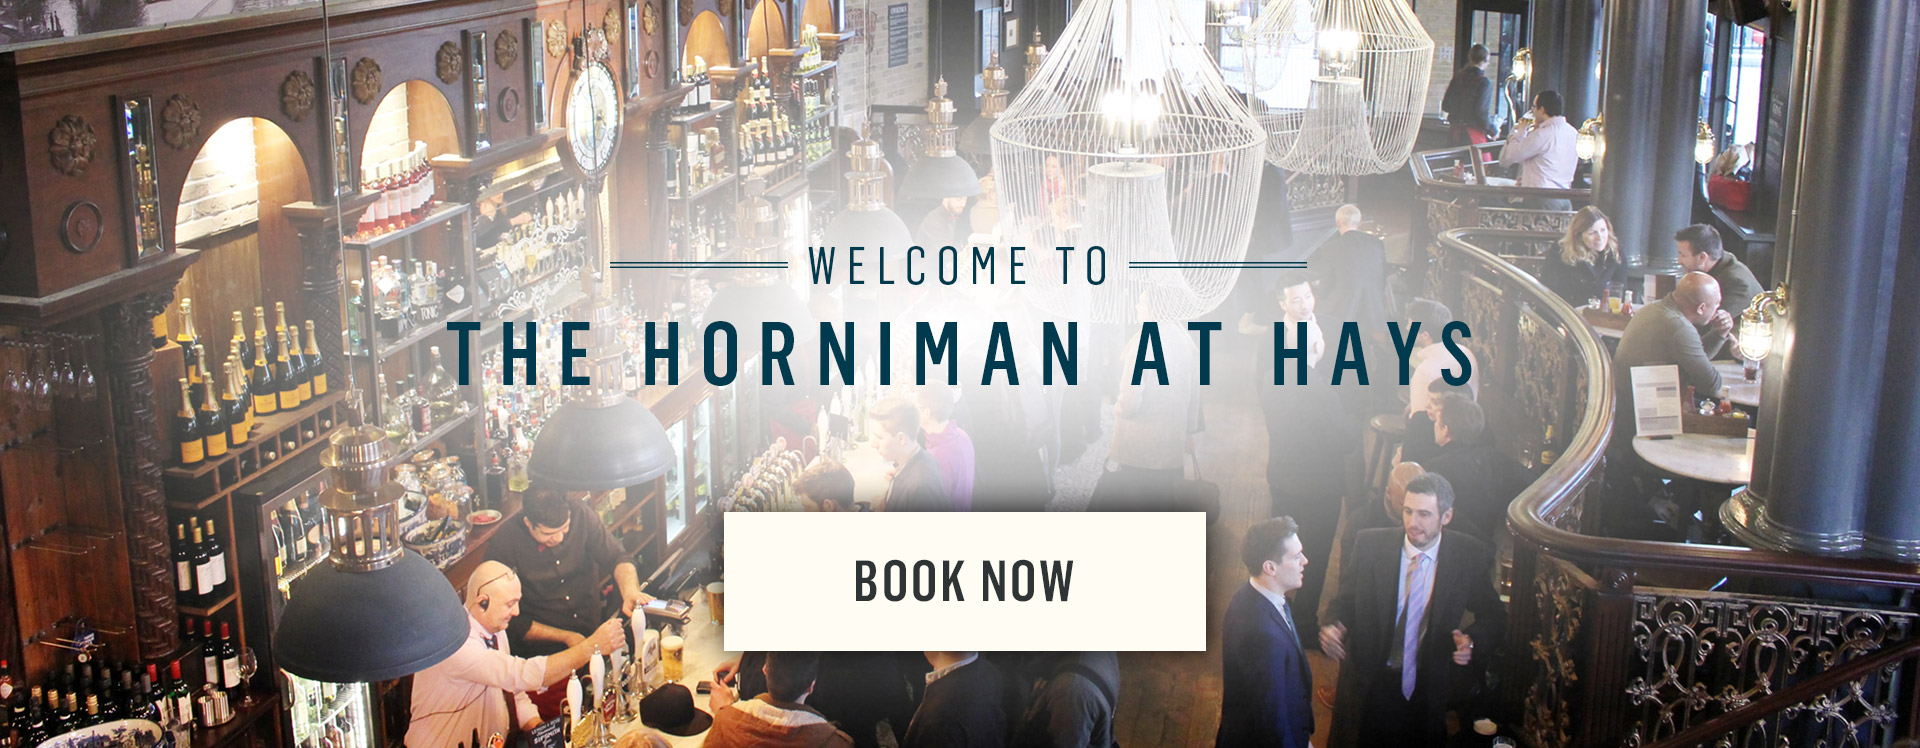 Welcome to The Horniman at Hays - Book Now